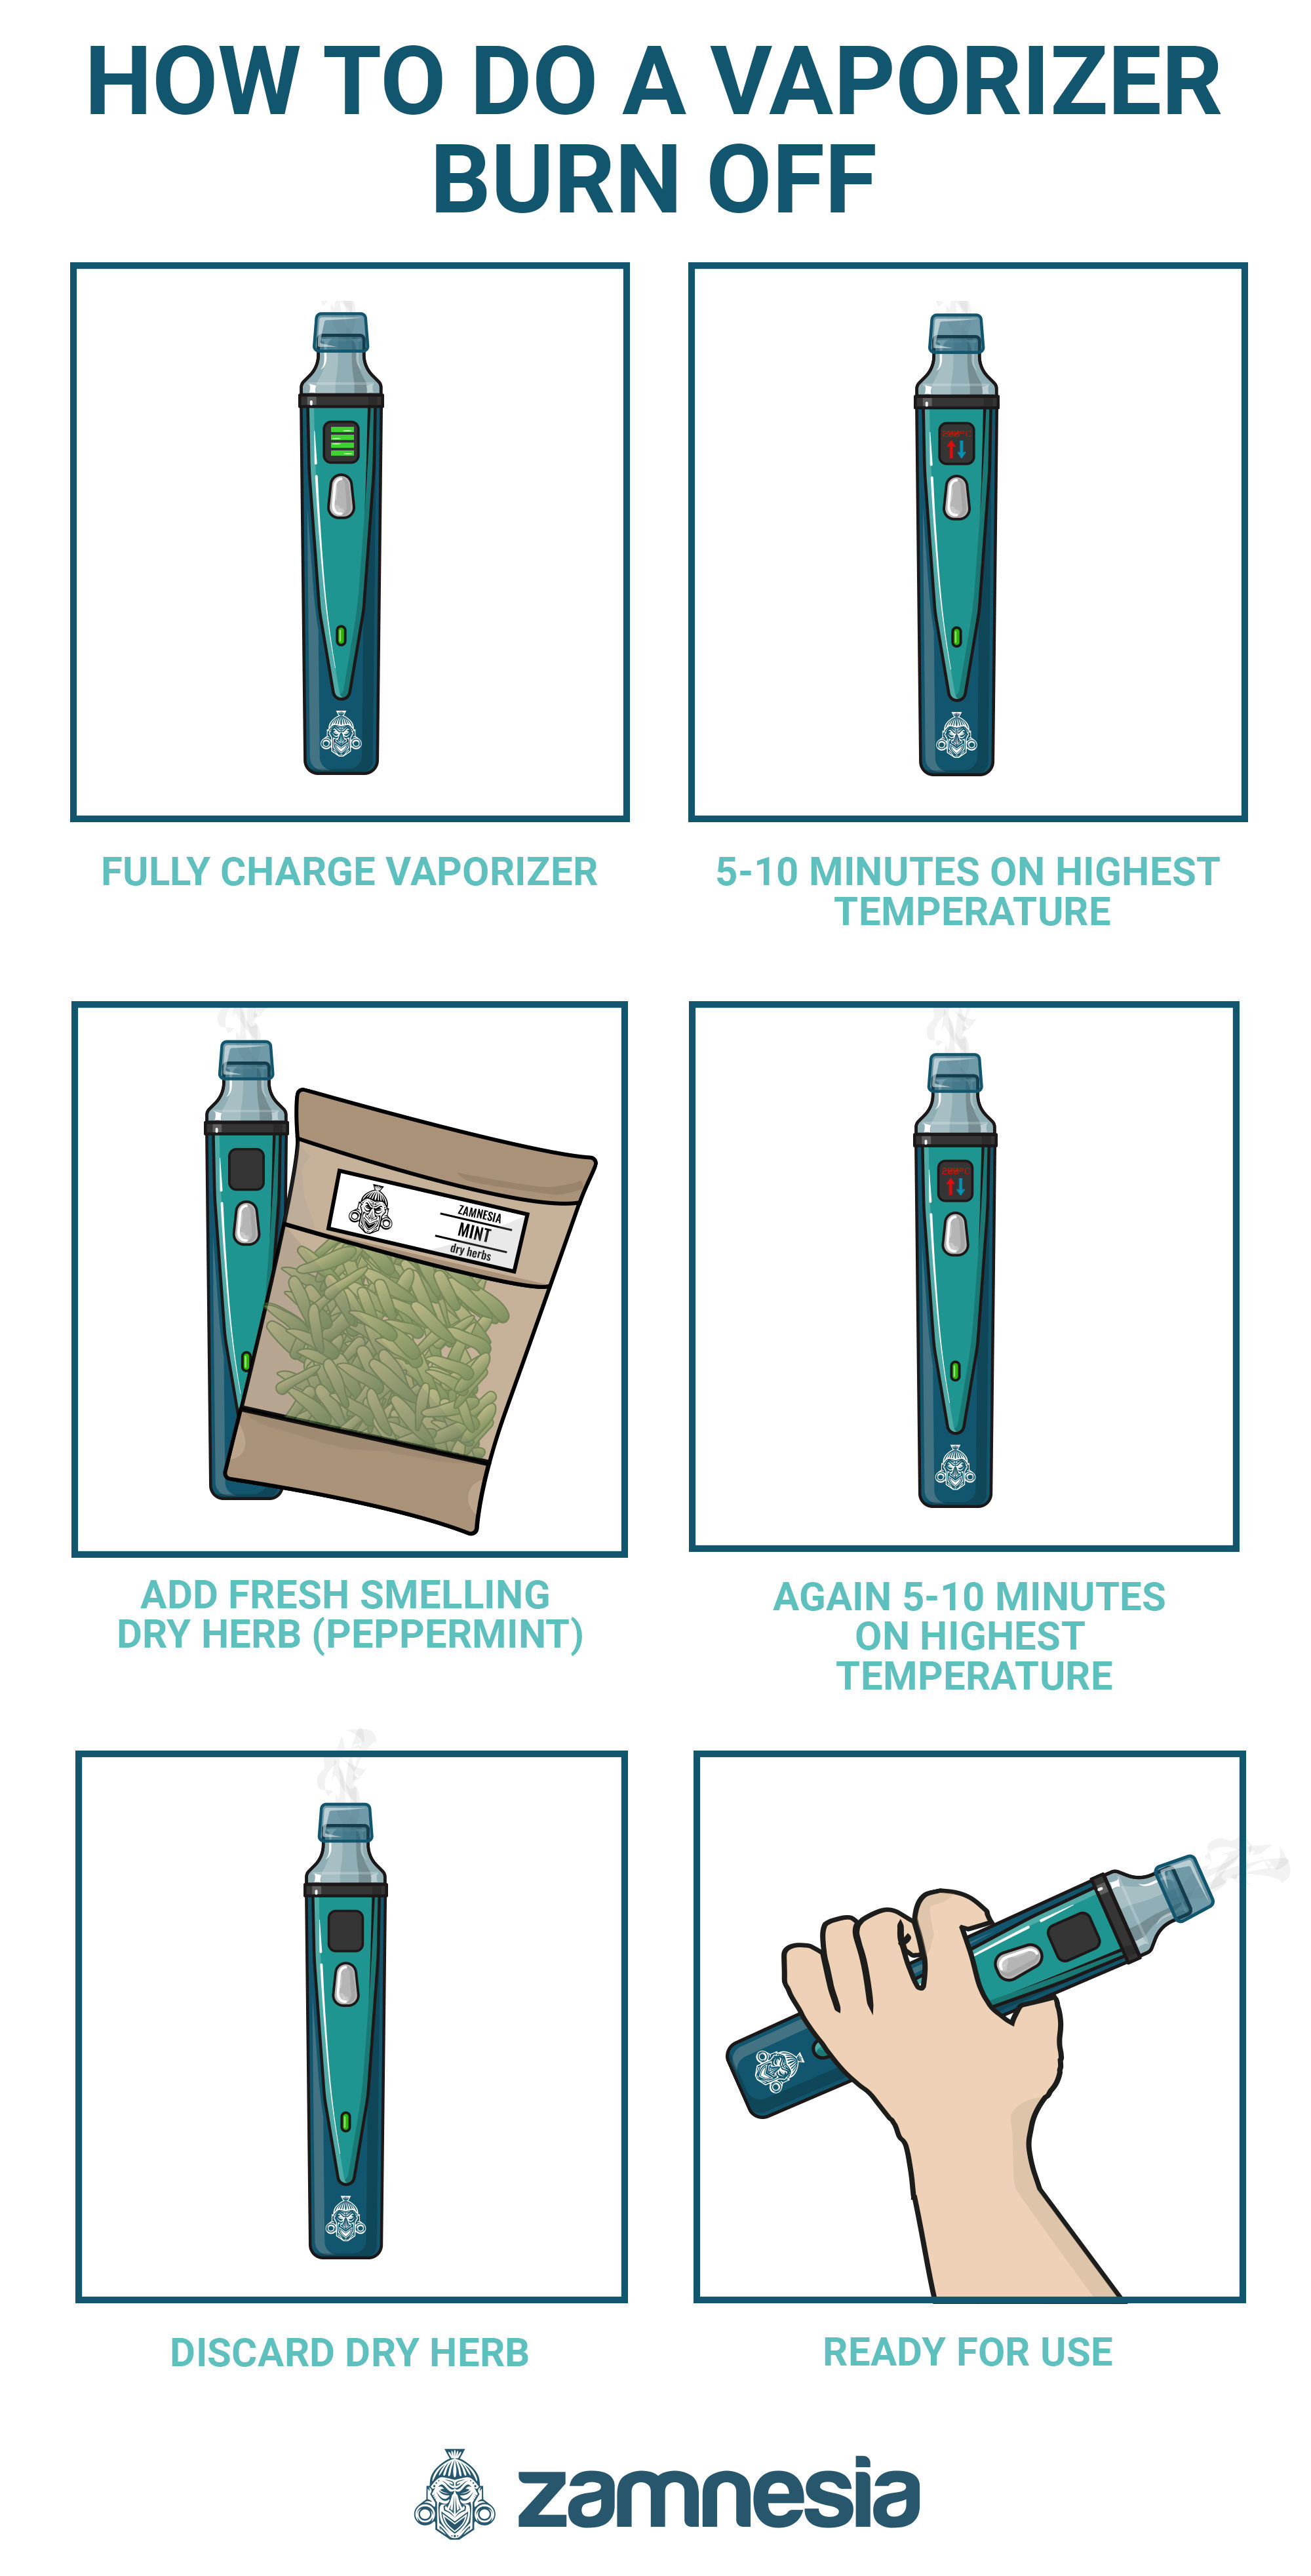 How To Do A Vaporizer Burn Off Infographic